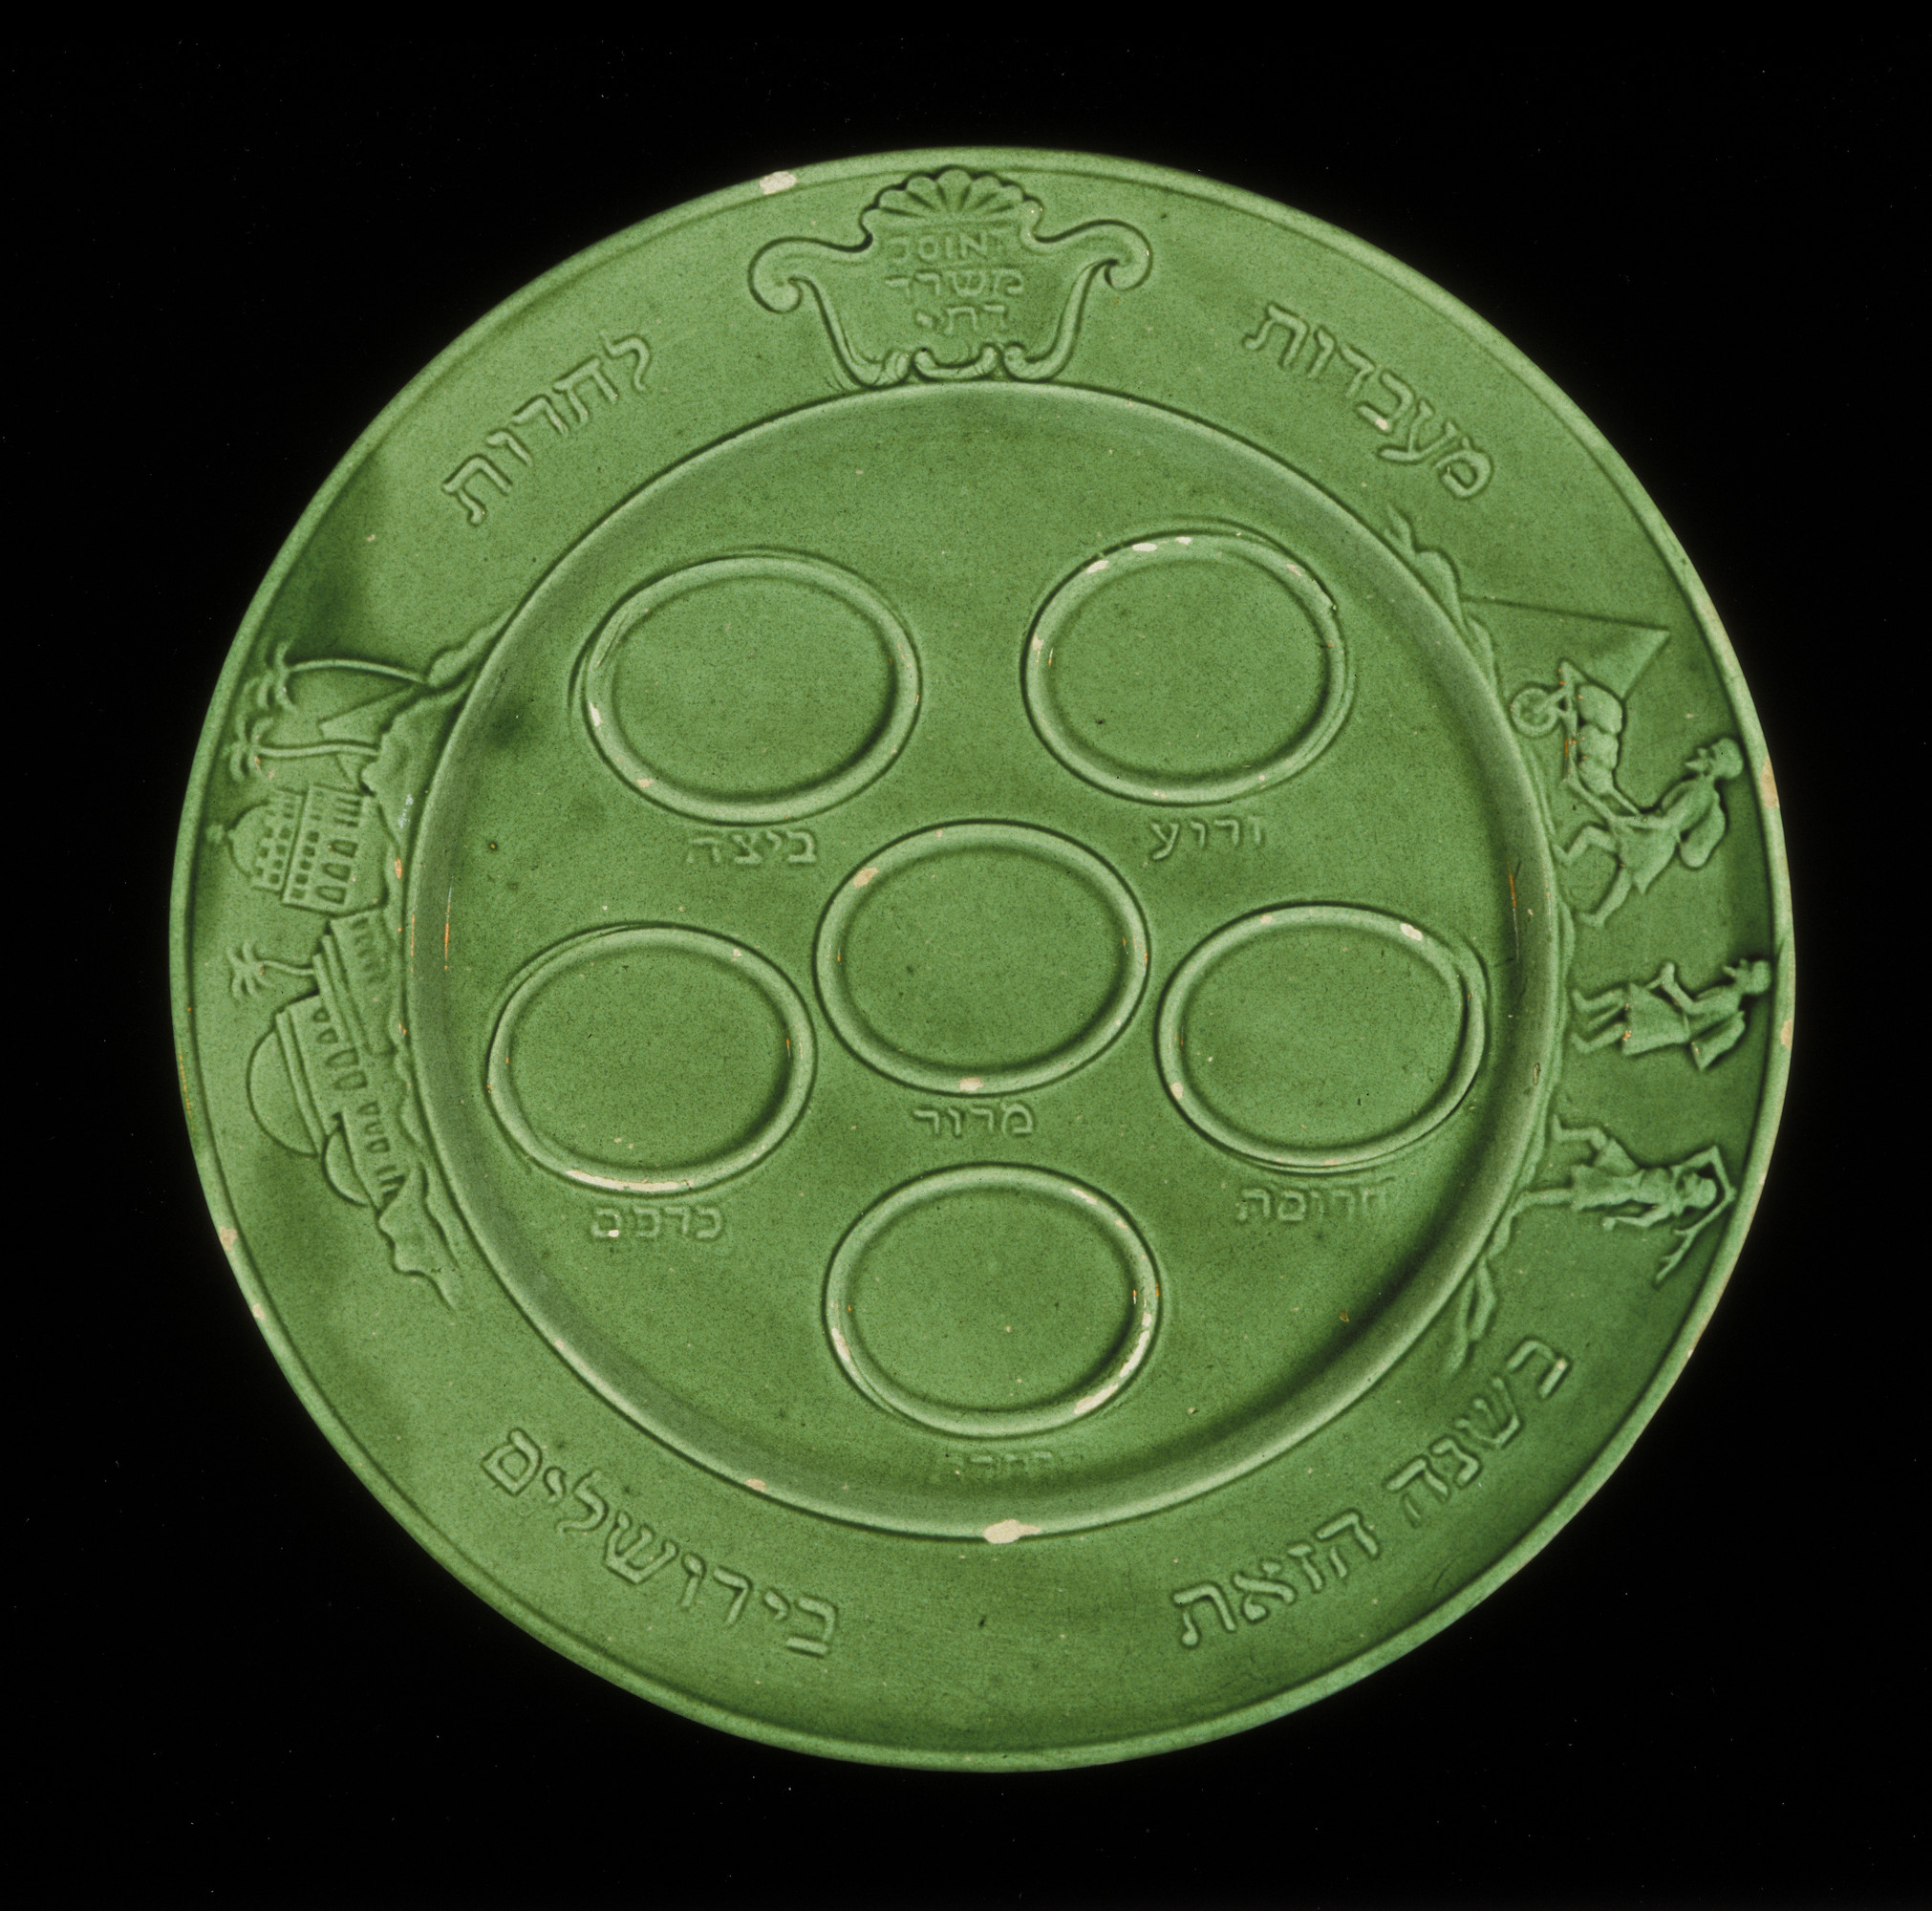 "Green glazed earthenware Passover seder plate made by Jewish DPs in the Föhrenwald displaced persons camp.  Engraved on the rim of the plate is a scene of slave laborers being forced to work by a master in the shadow of a pyramid and a group of buildings representing historic Jerusalem.  The Hebrew text on one side of the decorative motif reads: ""From Slavery to Freedom,"" and on the other: ""This Year in Jerusalem"".  Inside another decorative motif are the Hebrew and English words ""JOINT"" and ""Religious Office"".  Stamped on the back is the Hebrew term ""Sheerit ha-Pletah"" [Surviving Remnant] and the English, ""Employment Board"".  This seder plate was given to U.S. Army chaplain Rabbi Nathan Abramowitz by Jewish DPs at the Föhrenwald displaced persons camp."